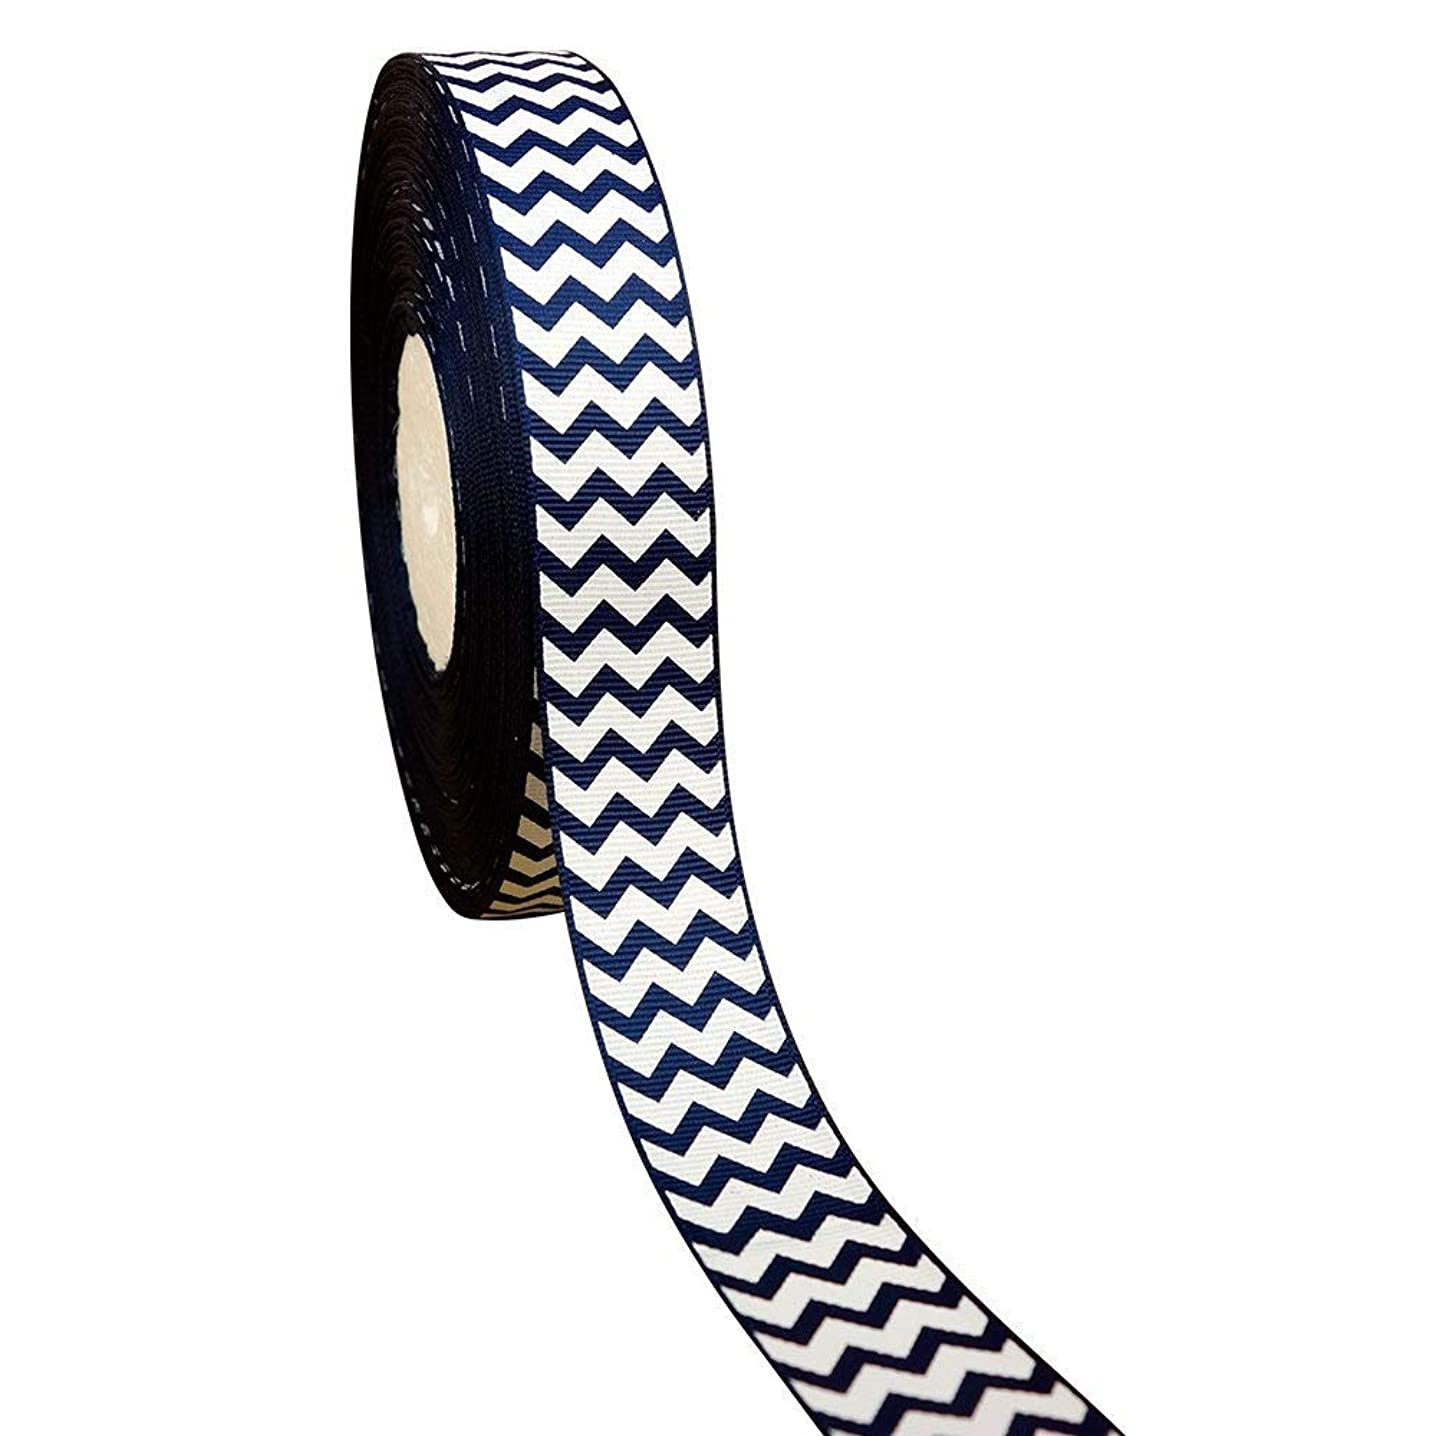 50 Yards 1 Inch White Chevron Printed Navy Grosgrain Ribbon Hairbow Sewing Craft Supplies Decorative